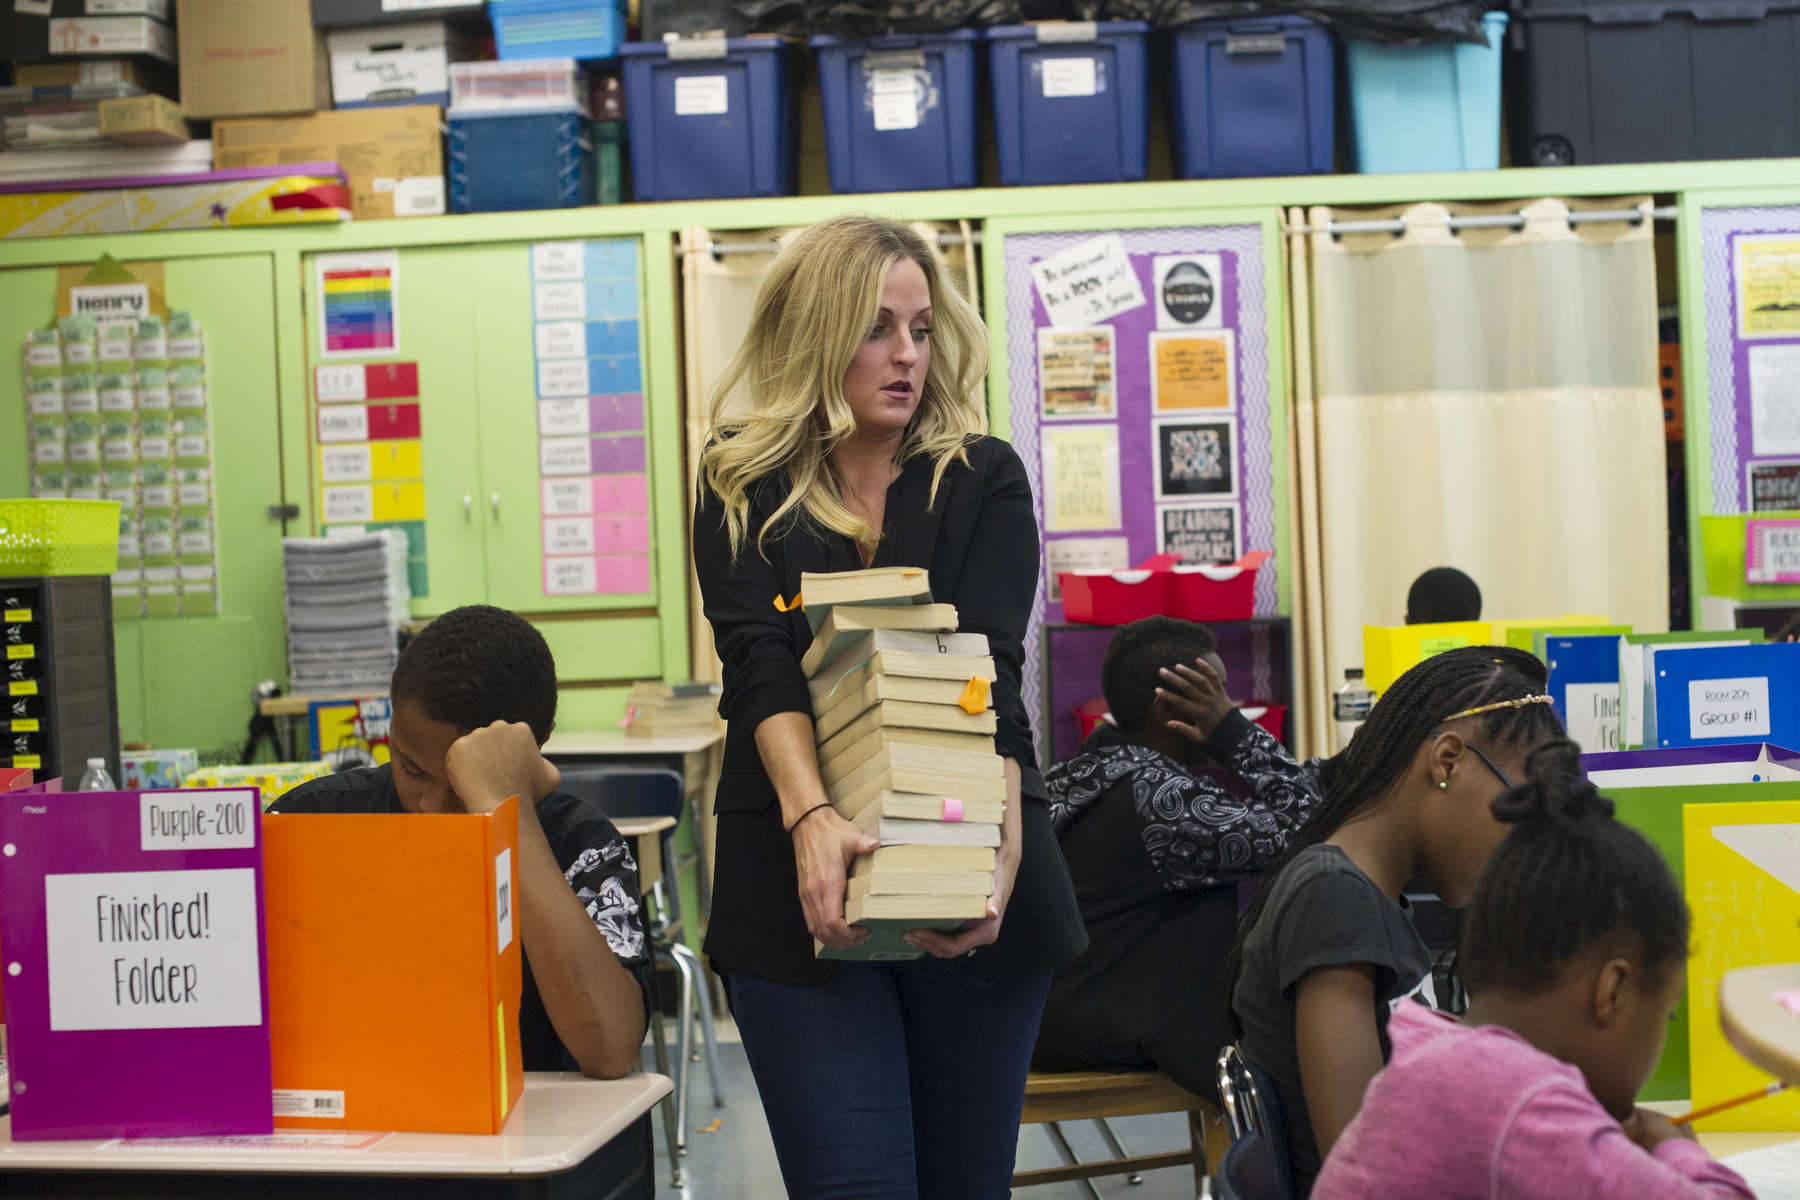 Sixth grade teacher Erin Henry carries books to be distributed for open reading as her students take a vocabulary quiz at Beulah Shoesmith Elementary School, October 7, 2016.